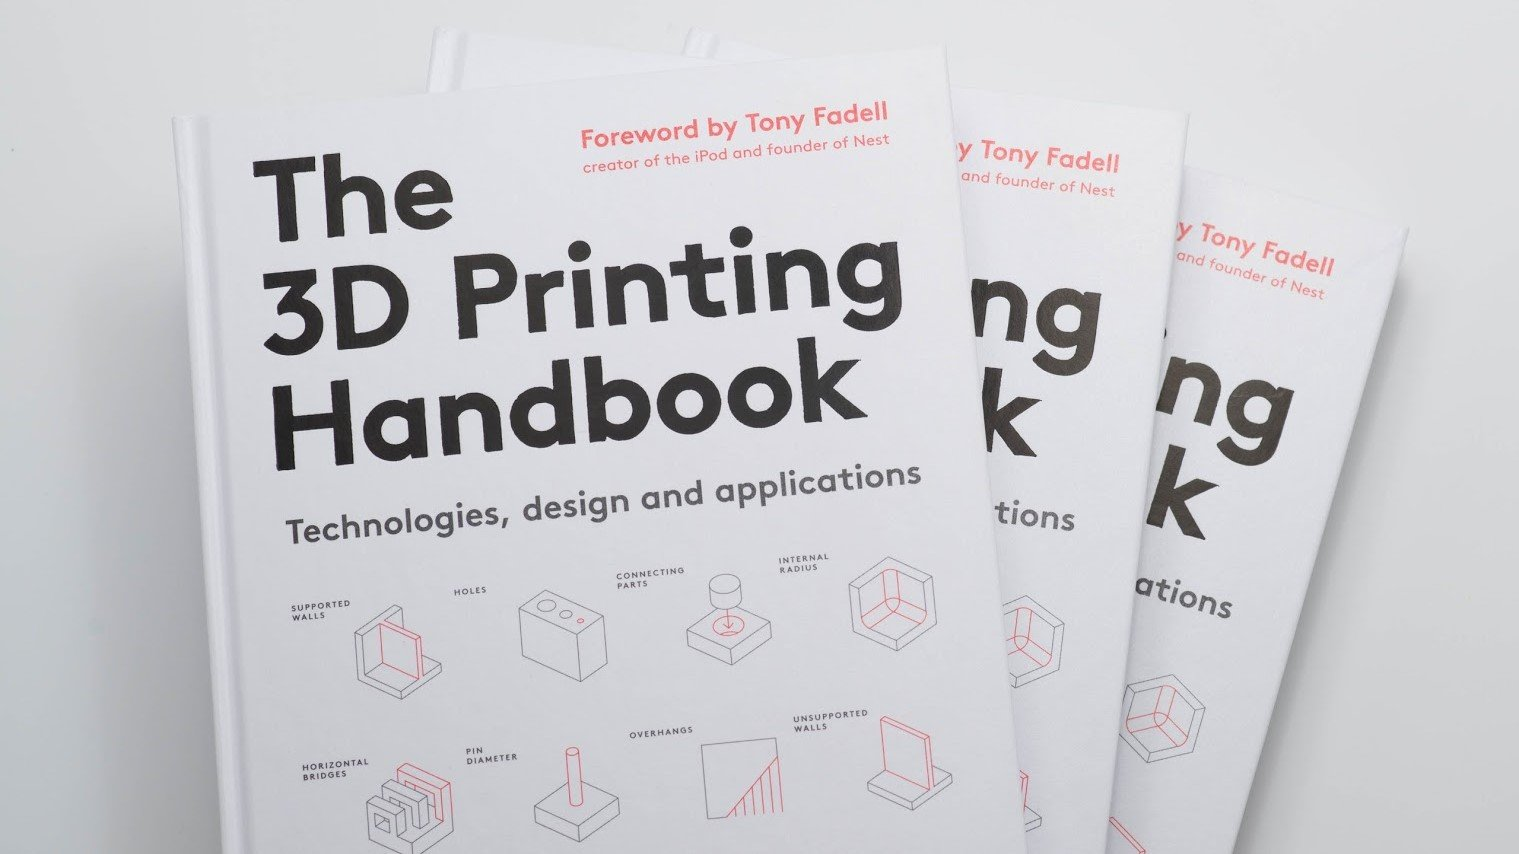 The 3D Printing Handbook Review: The Only Handbook You'll Ever Need | All3DP